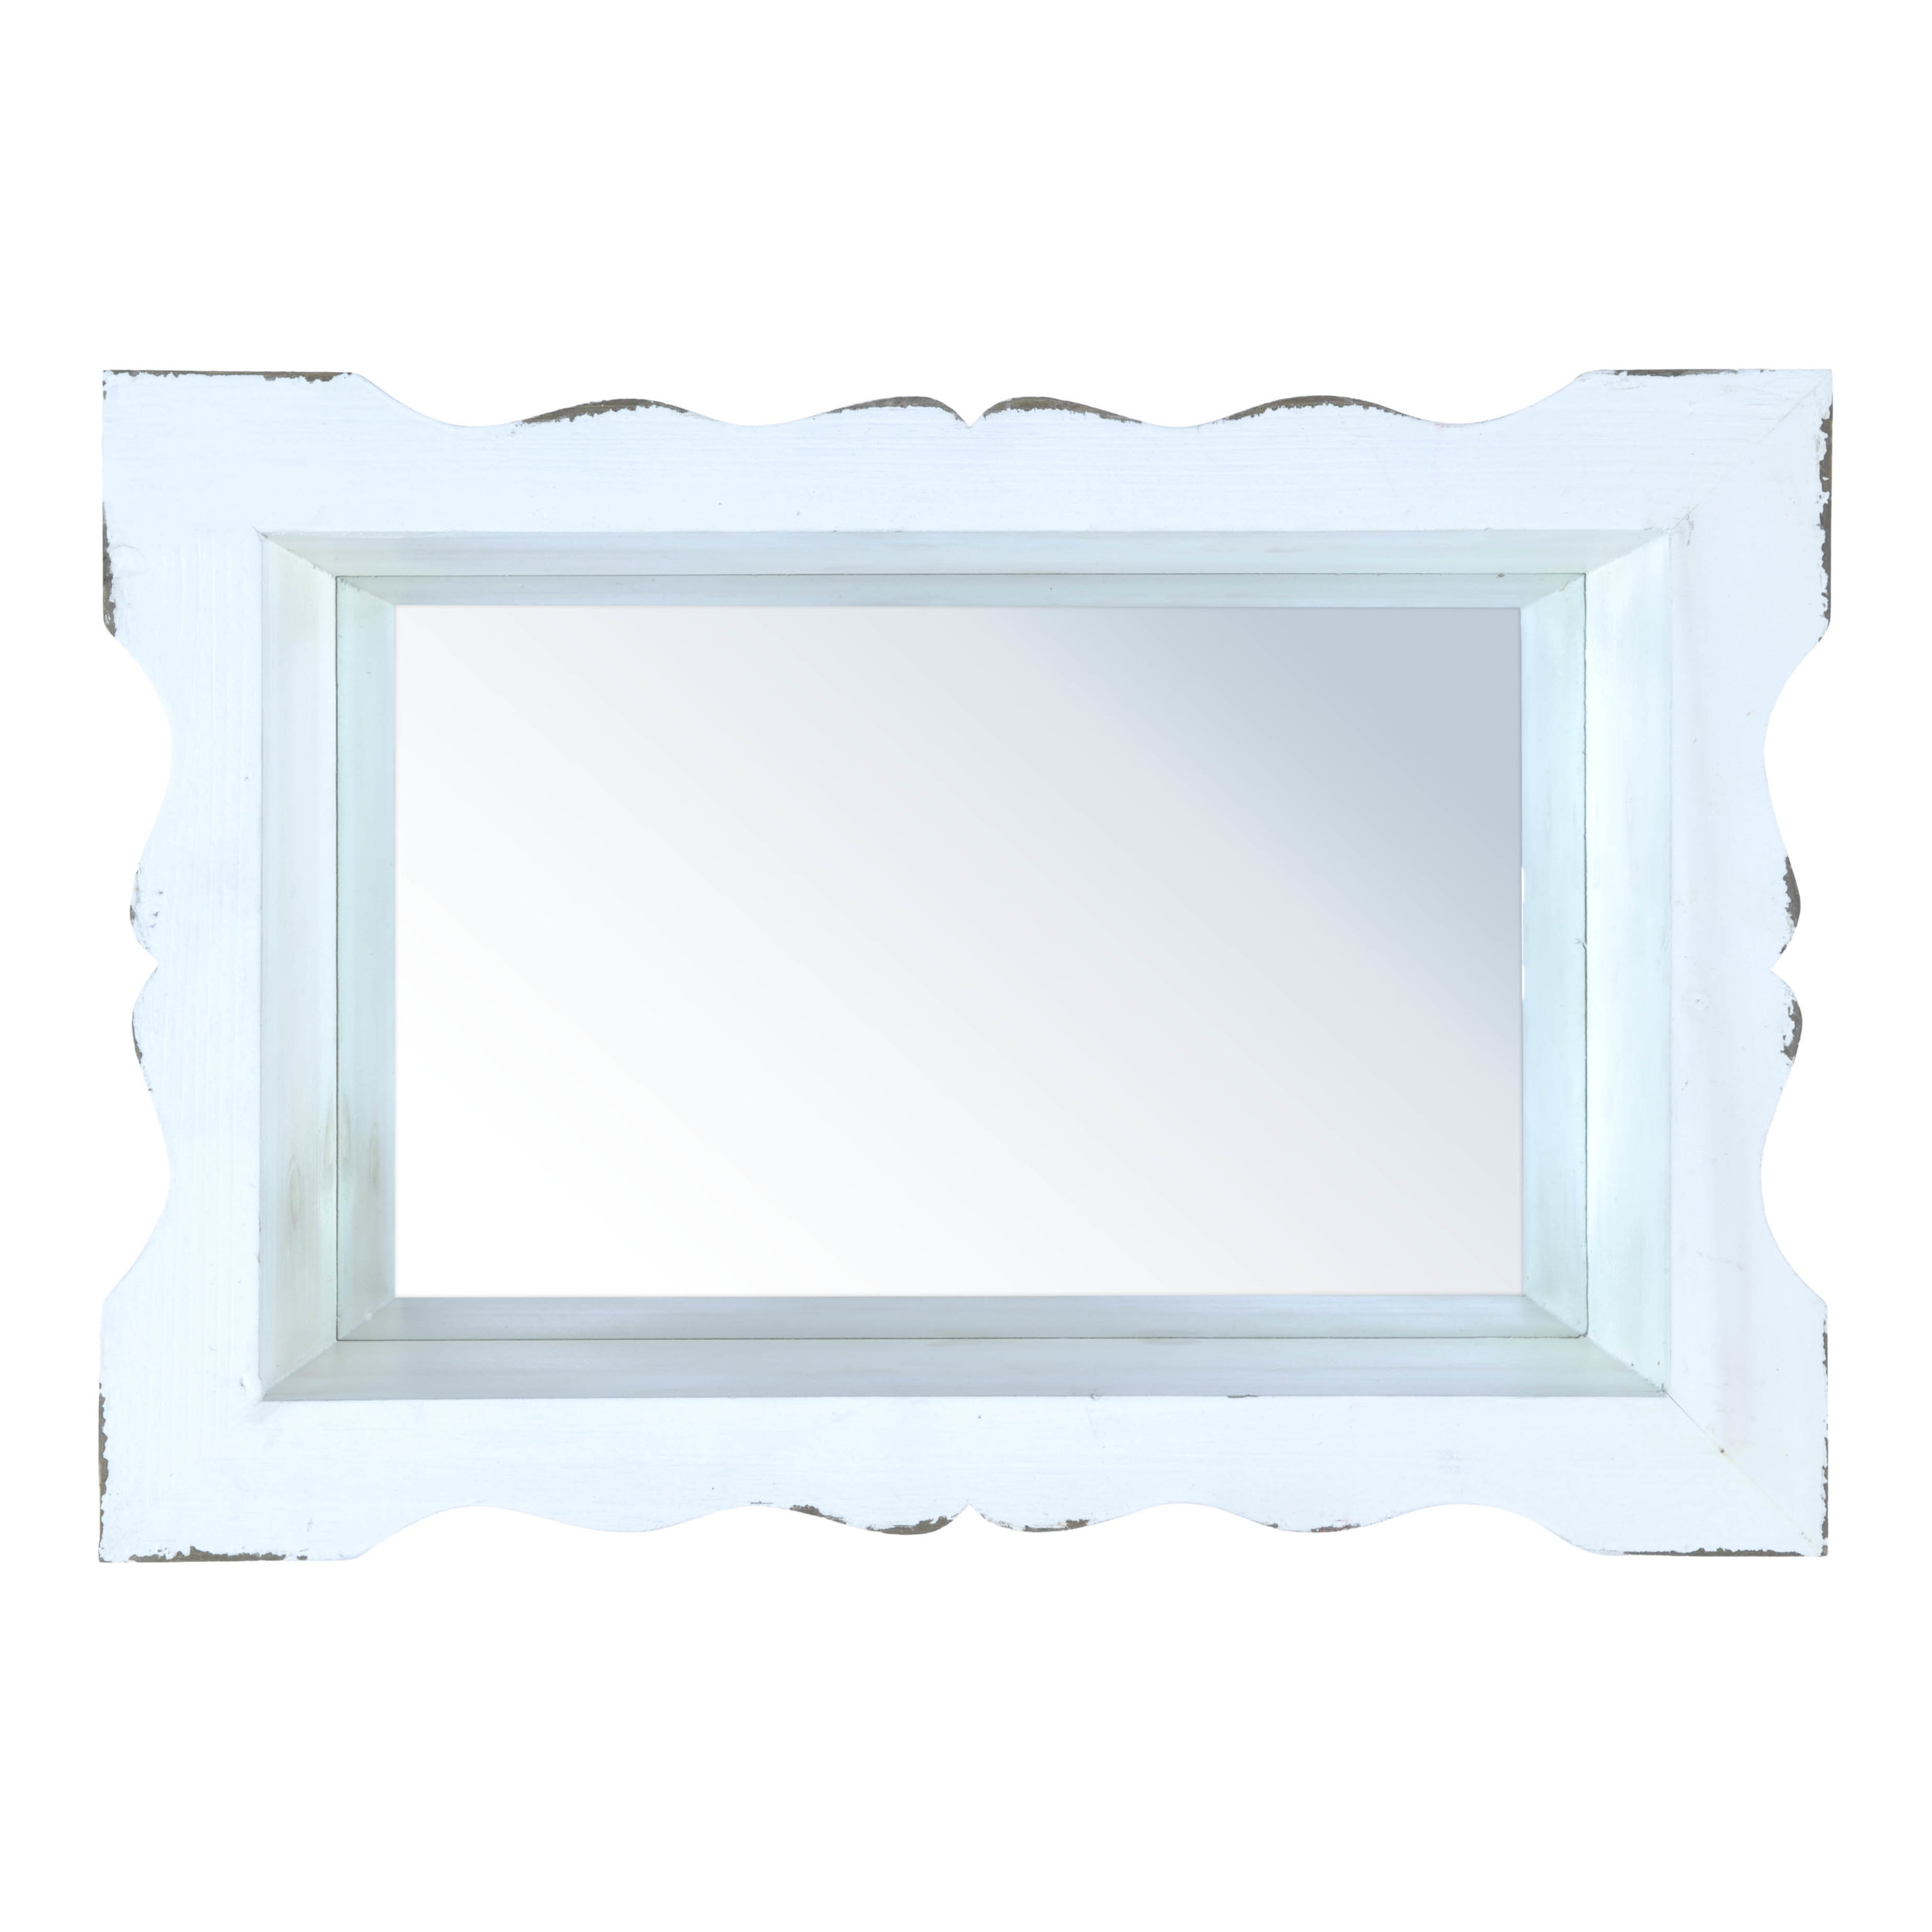 €40 WOODEN WALL MIRROR IN ANTIQUE WHITE COLOR 44Χ14Χ30